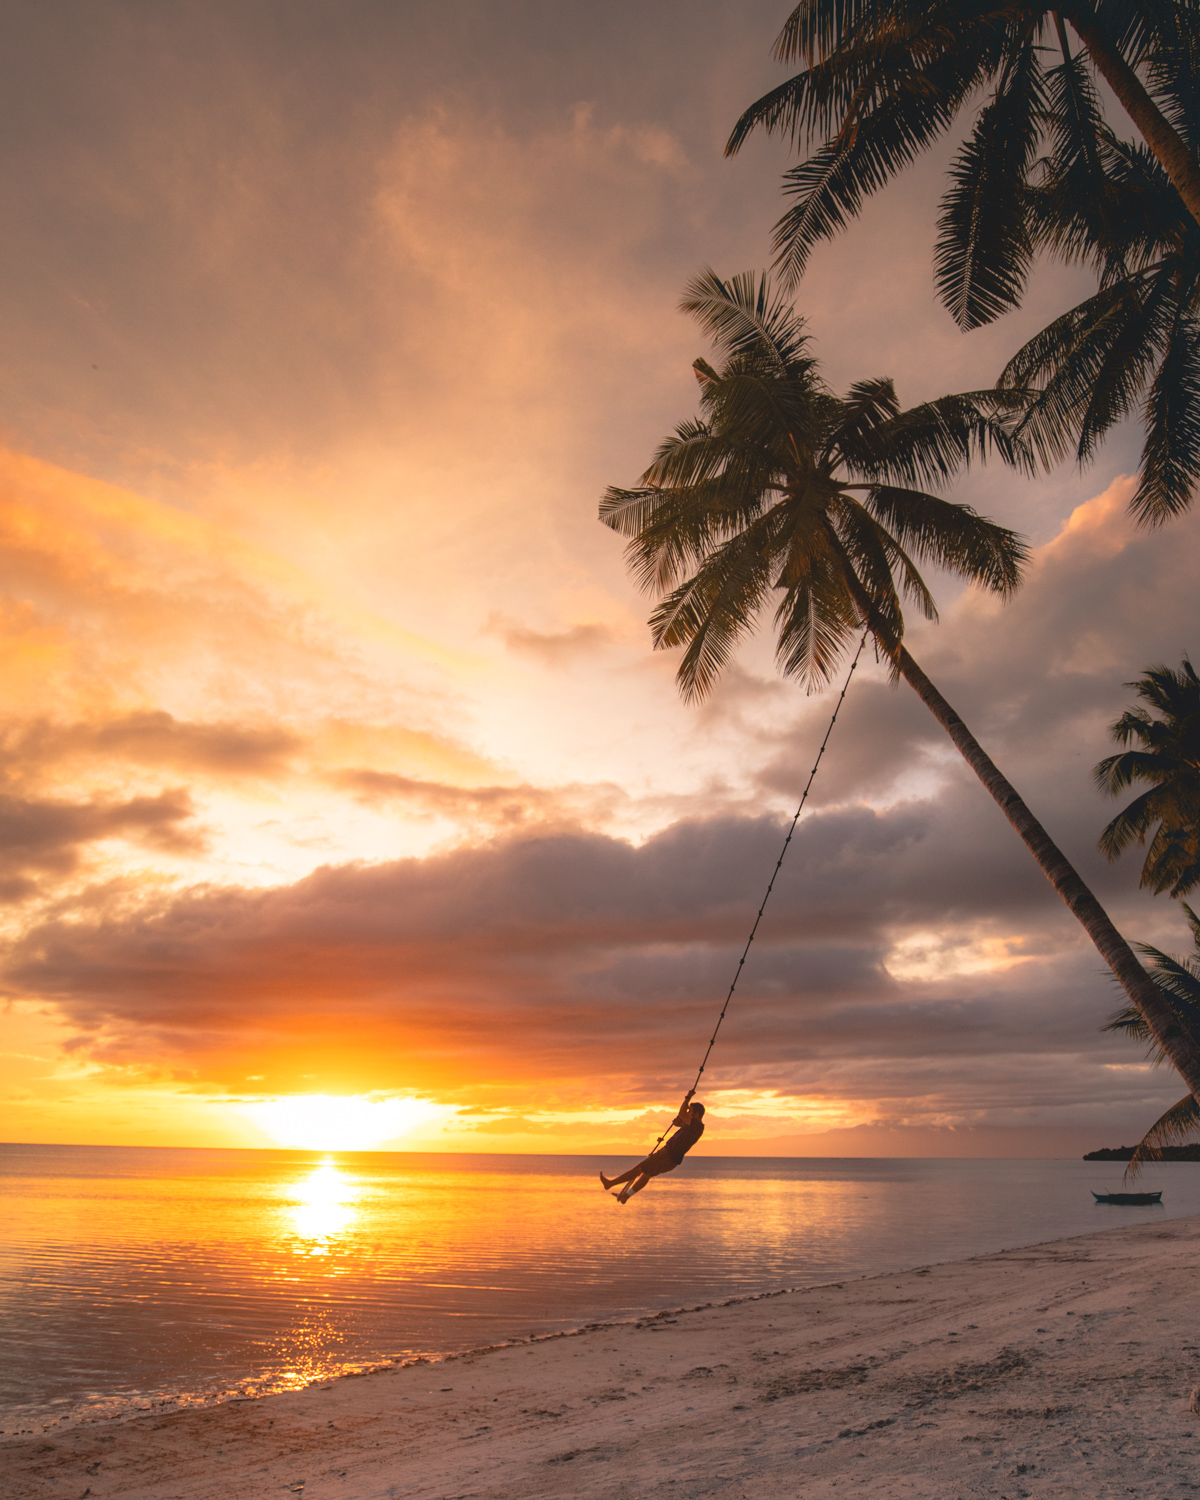 The swing by Coral Cay - a fun break from happy hour